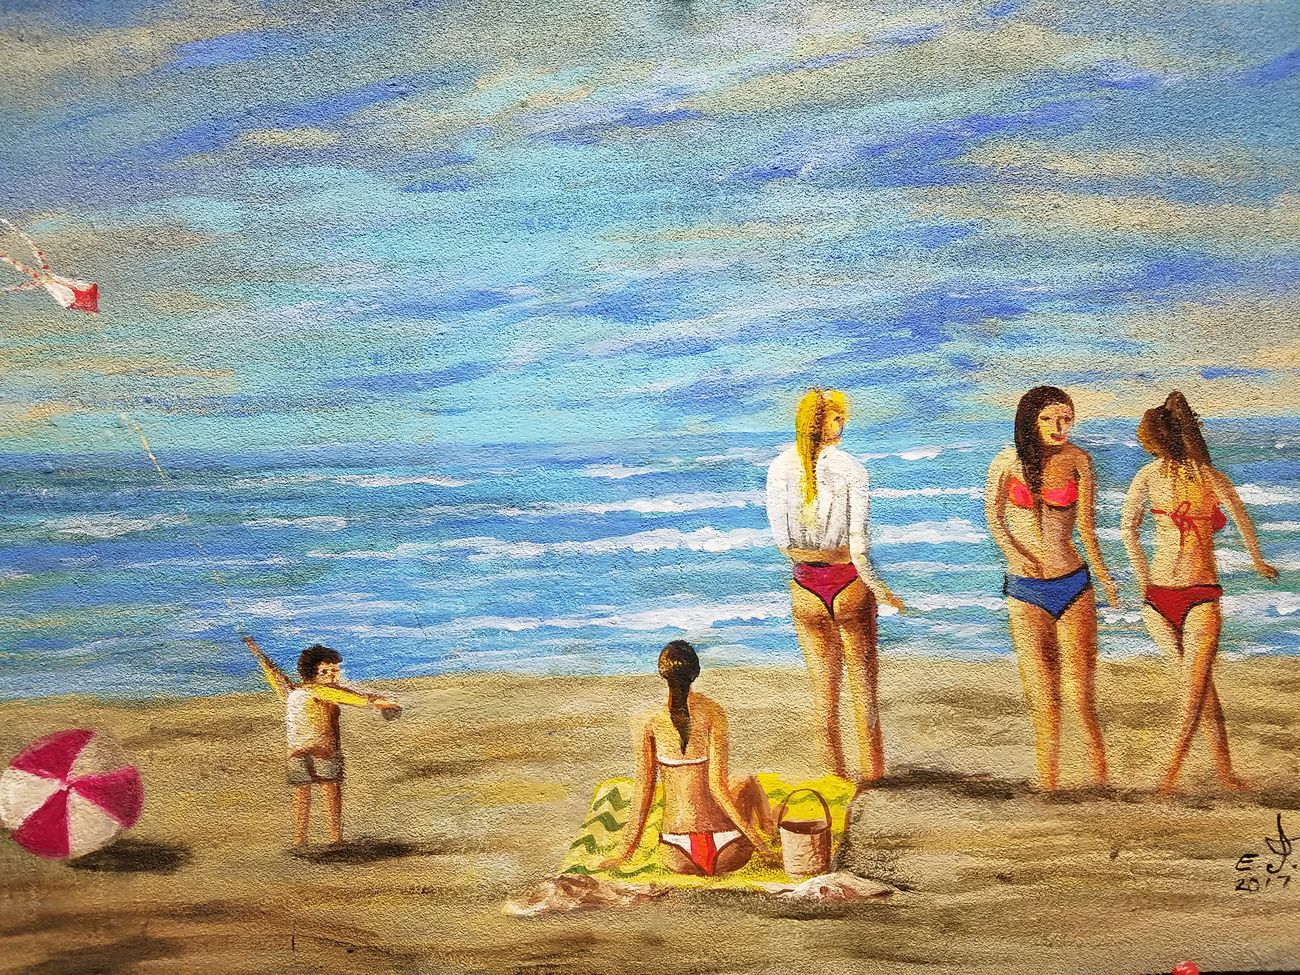 """Sunday at the beach, Acrylic on my secret canvas 16""""_24"""".original and uniquely my style no copy . Real People Beach Day Sand Leisure Activity Sky Play Time Women Outdoors Beauty In Nature Drawing My Art Collection Fine Art Art, Drawing, Creativity Art Freedom Creativity Acrylic Friendship. ♡   Love❤ Koi with My Best Friends ❤"""